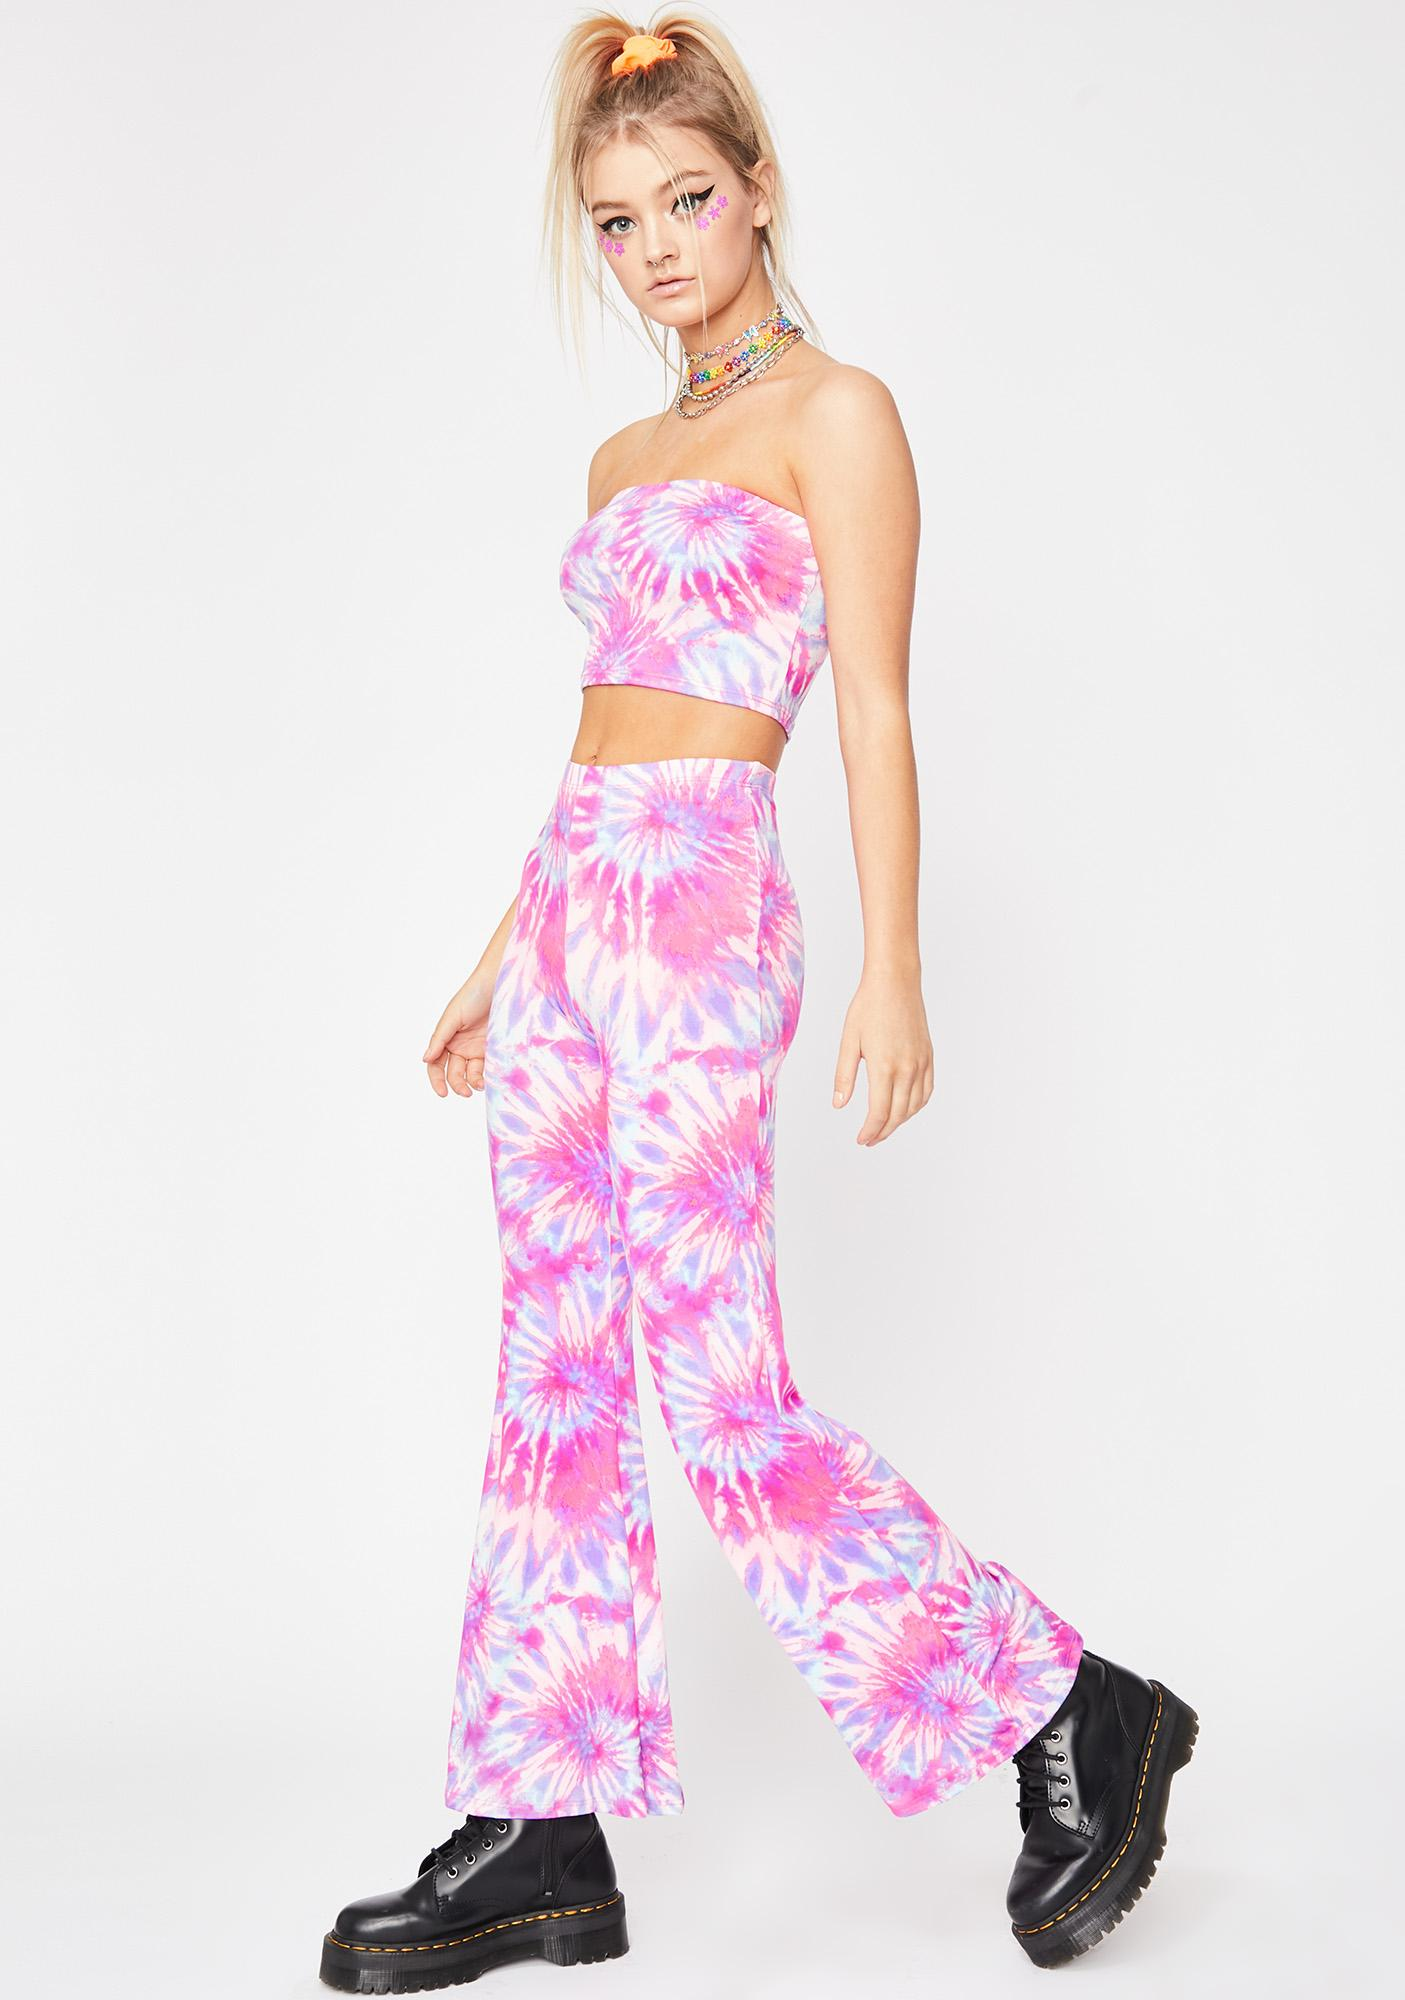 c8acef7bb54 Tie Dye Tube Top Flares Set